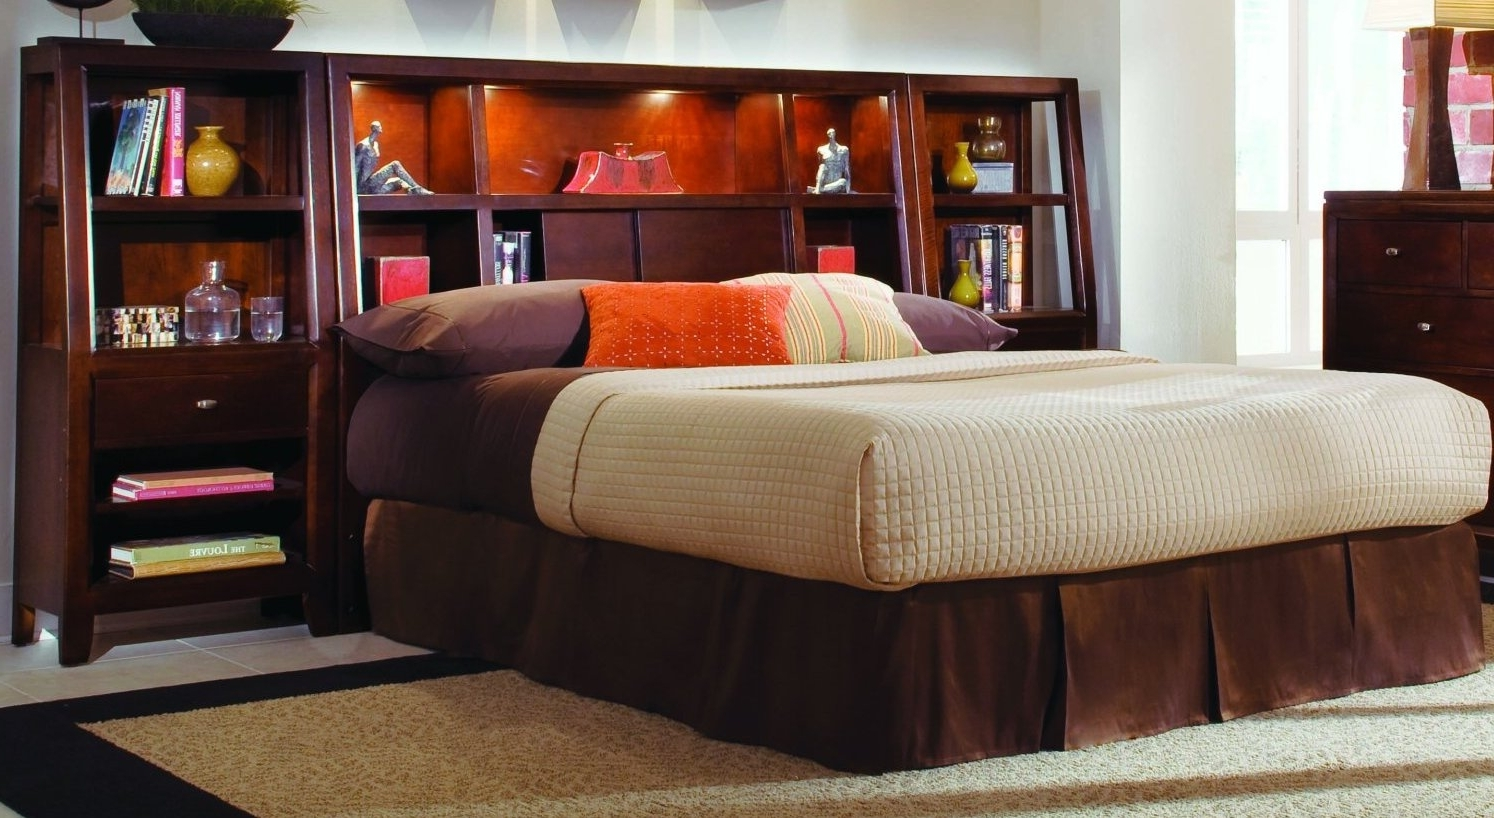 Best And Newest Queen Bookcase Headboard Modern House Design : Beautiful Bookcase Throughout Queen Bookcases Headboard (View 12 of 15)